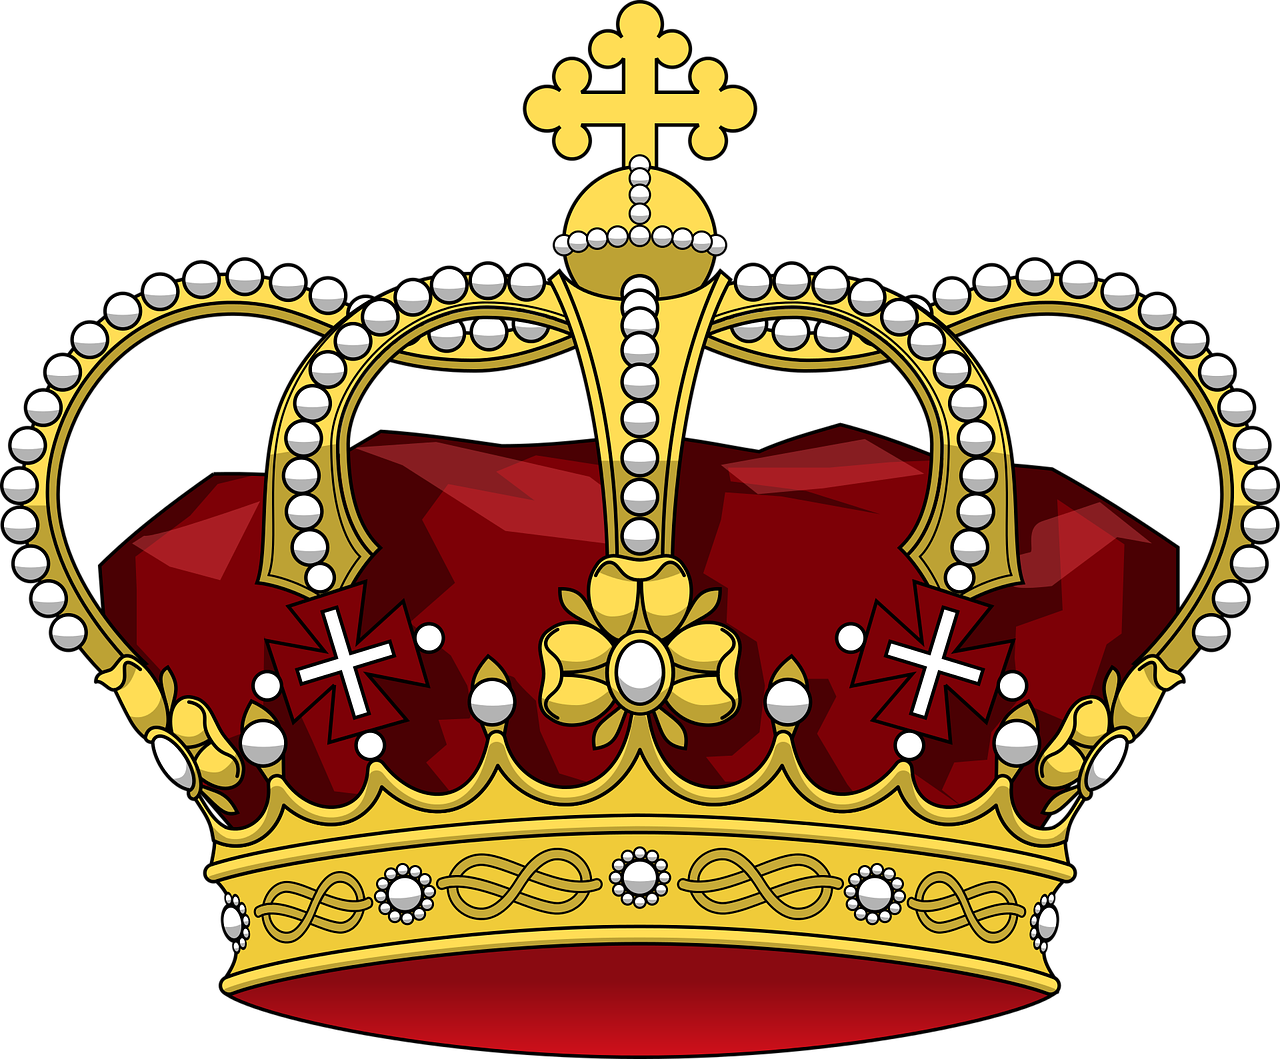 British crown clipart jpg royalty free library Jewelry, Crown Jewel Jewellery Jewelry King Monarch #jewelry, #crown ... jpg royalty free library